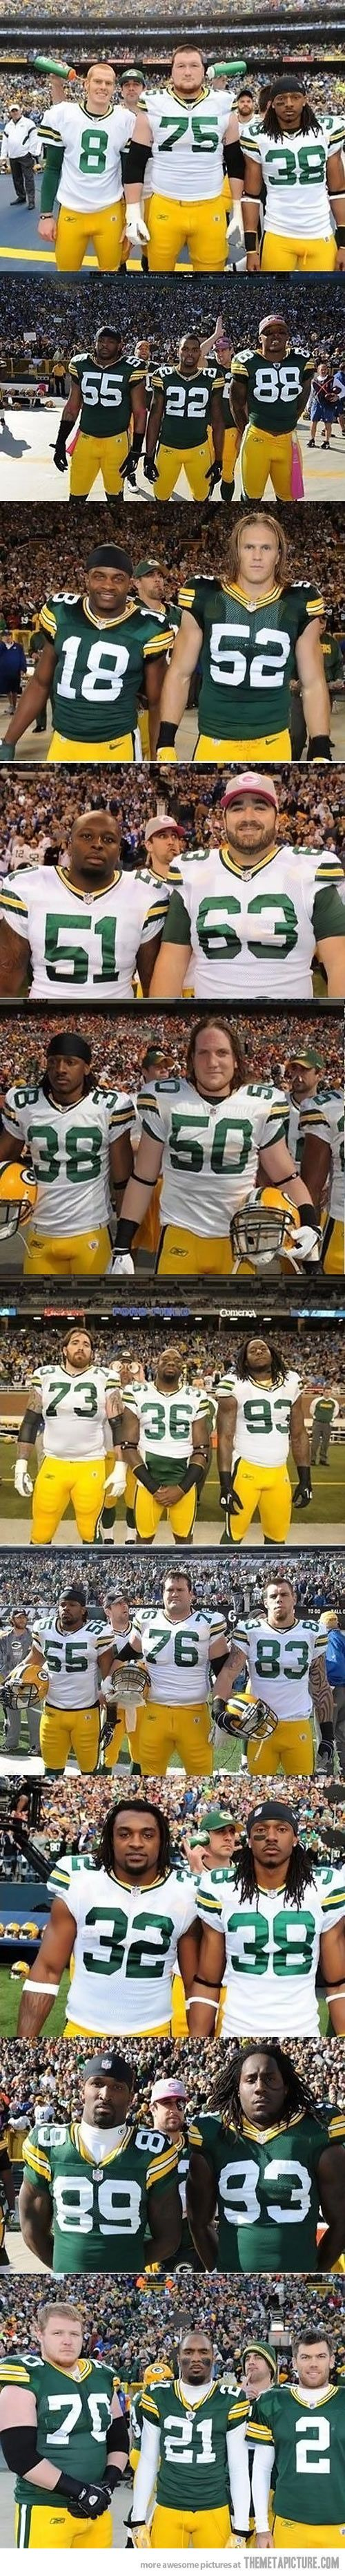 Aaron Rodgers, master photobomber...  Check out https://www.facebook.com/This-Girl-Loves-Packers-773855469299749/